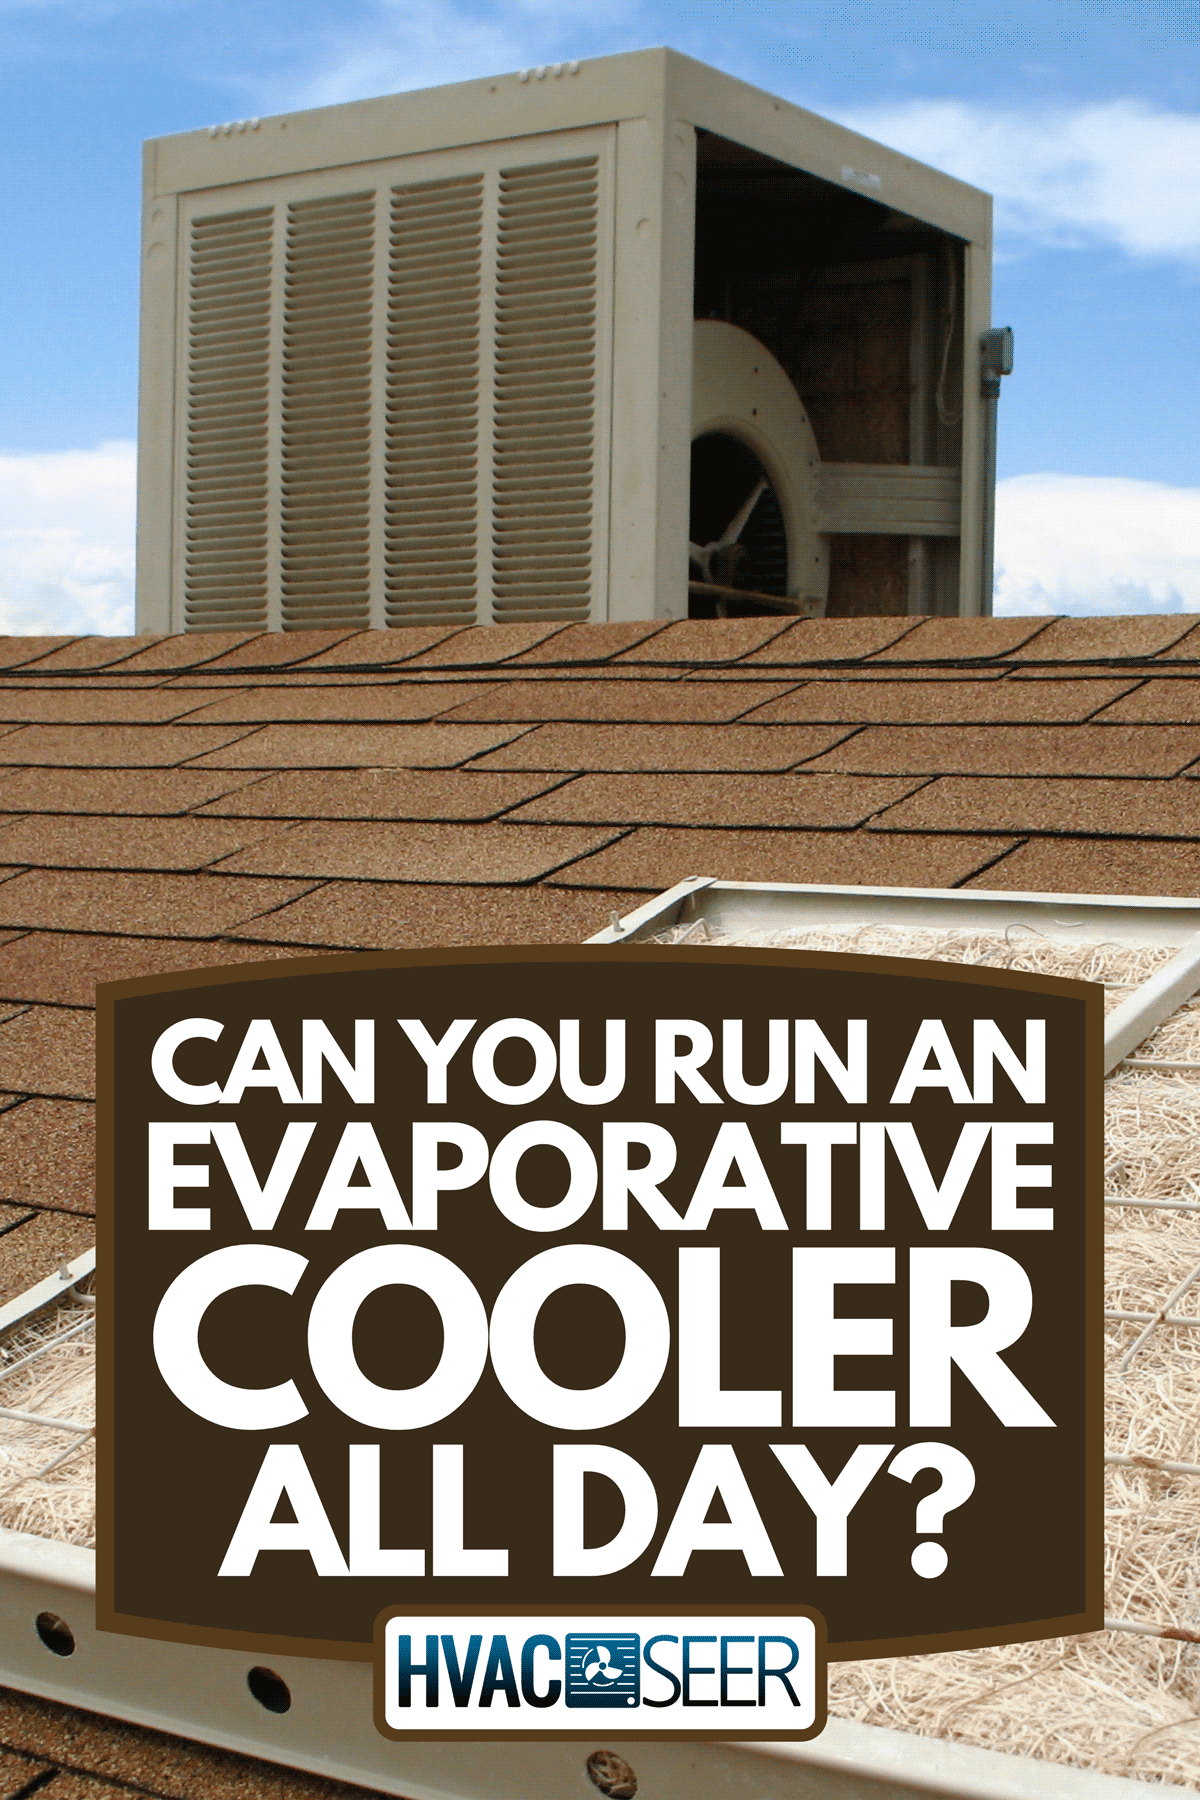 Swamp cooler maintenance on reddish shingled roof, Can You Run An Evaporative Cooler All Day?